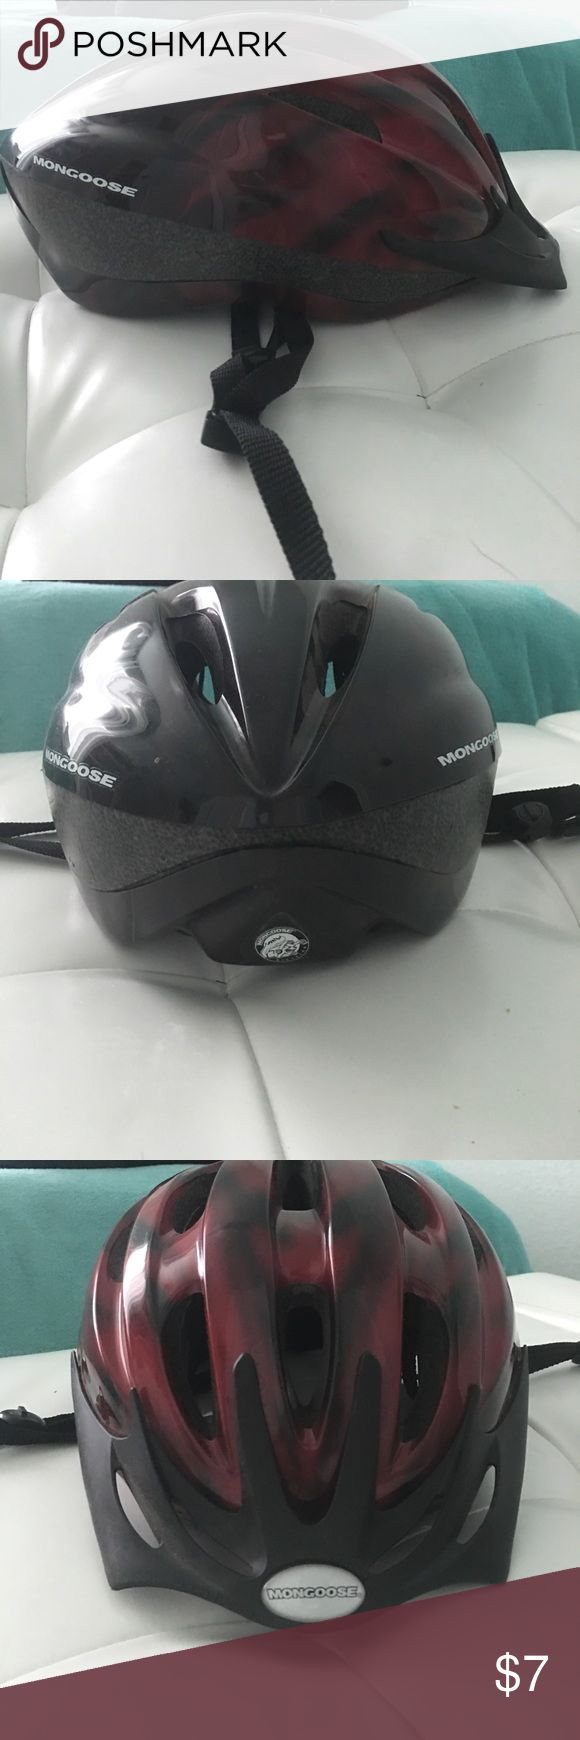 Mongoose Bike Helmet This helmet in great condition! Only used a couple of times! Youth size! Age range from 7-12 years old! mongoose Other